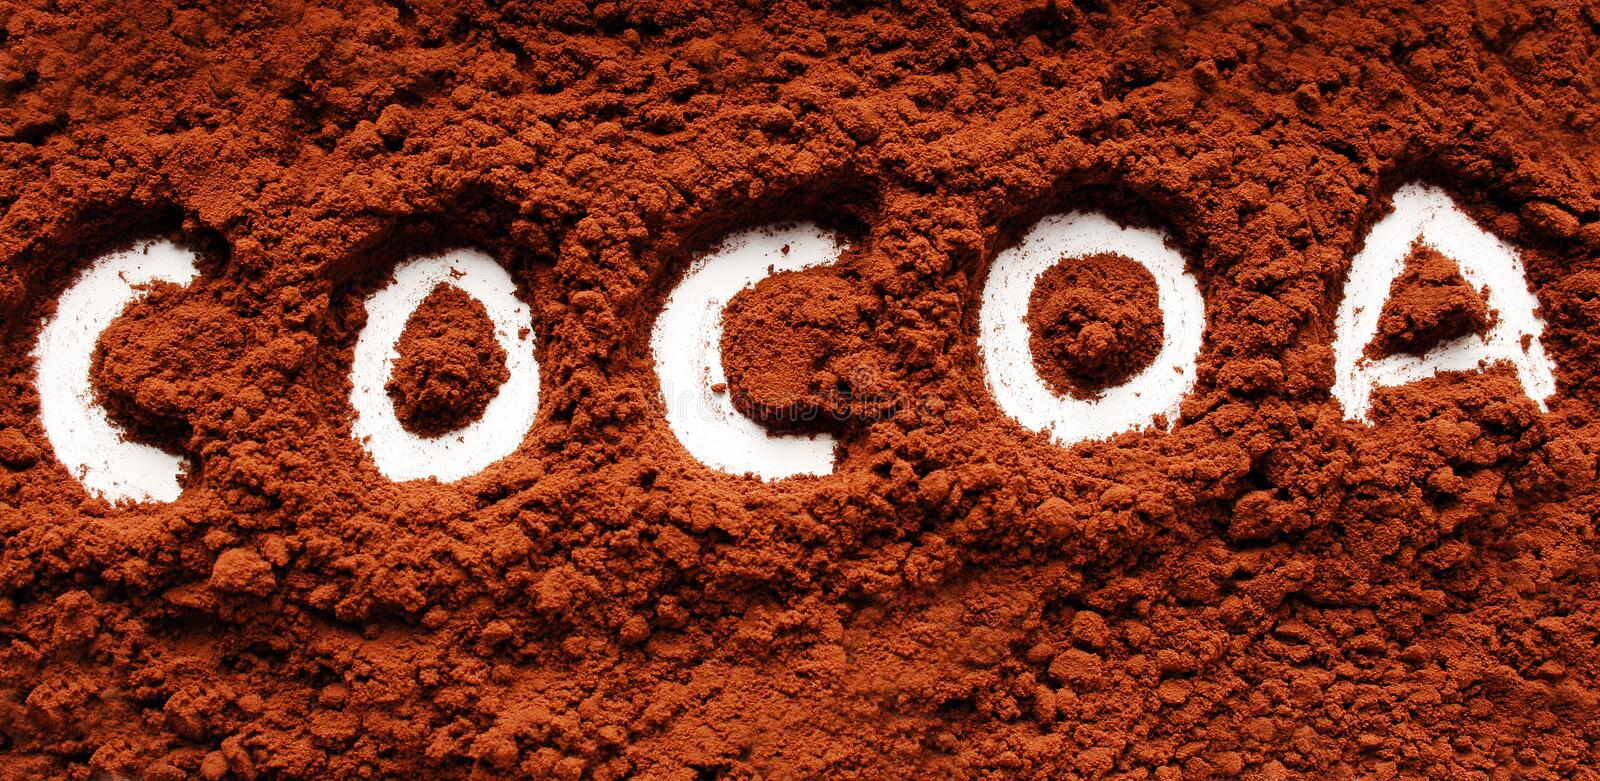 Powder written cocoa. The word cocoa written in cocoa powder royalty free stock photo